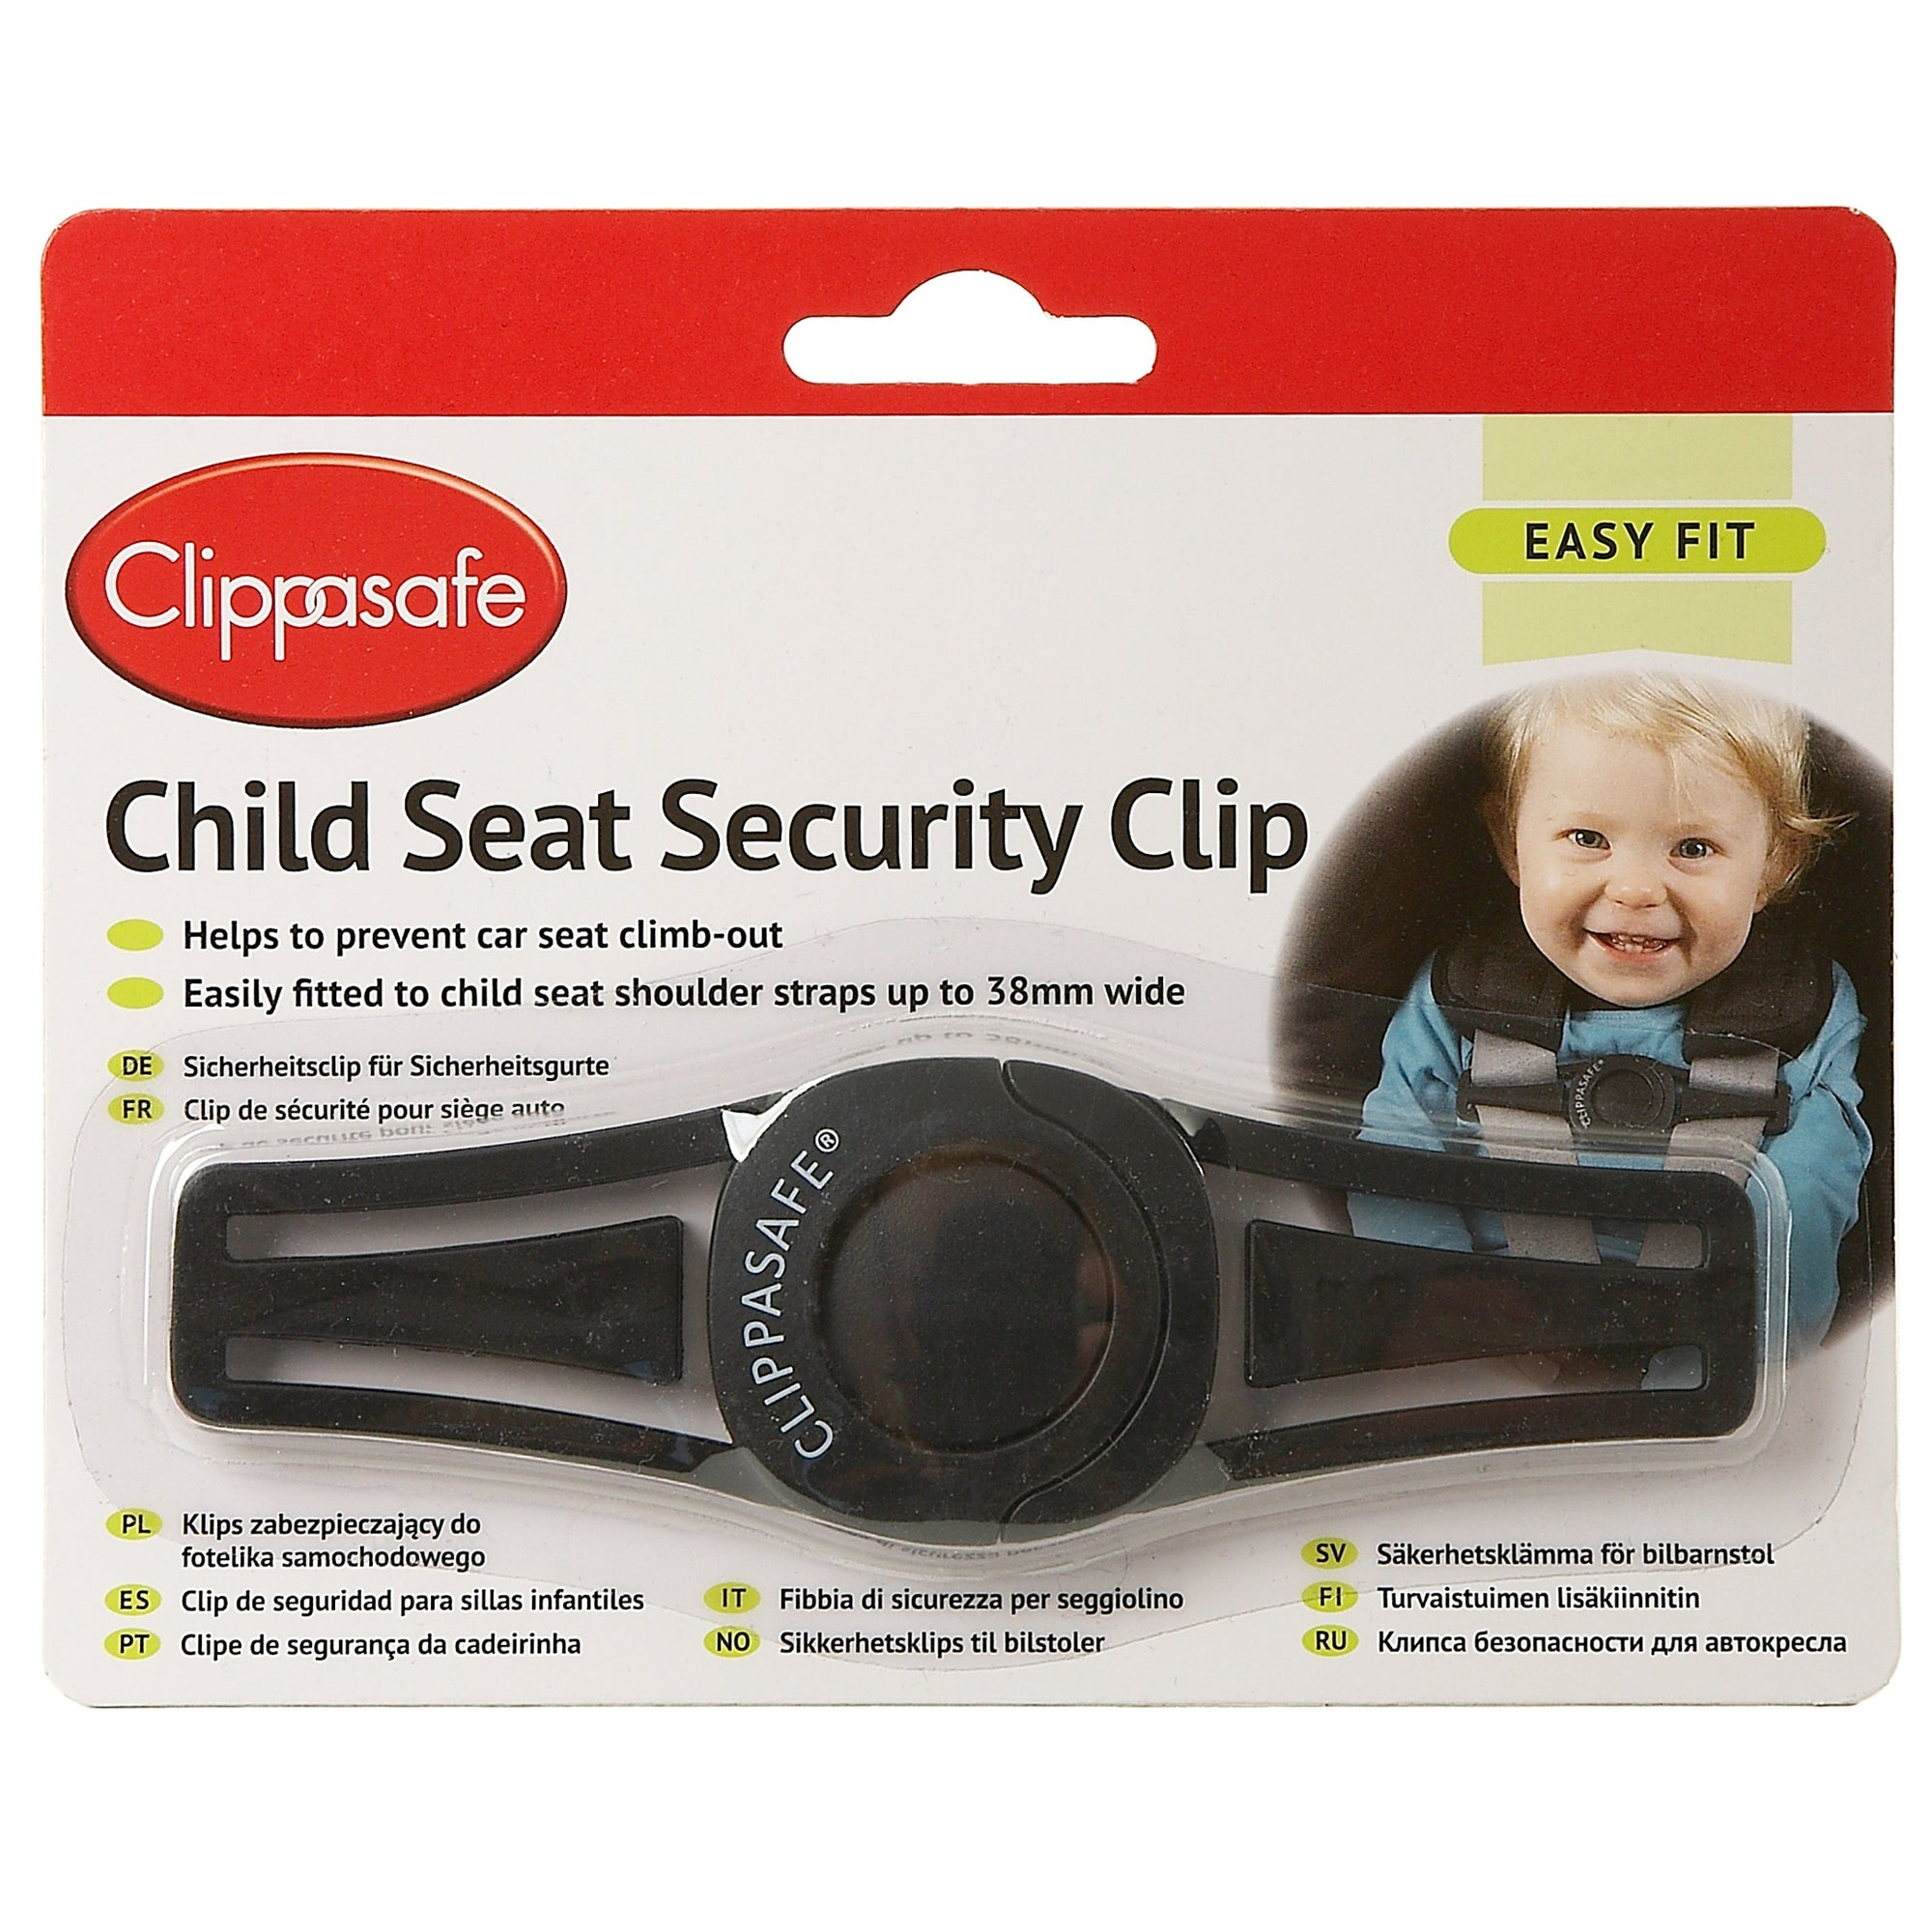 Clippasafe 64 Child Seat Security Cliop